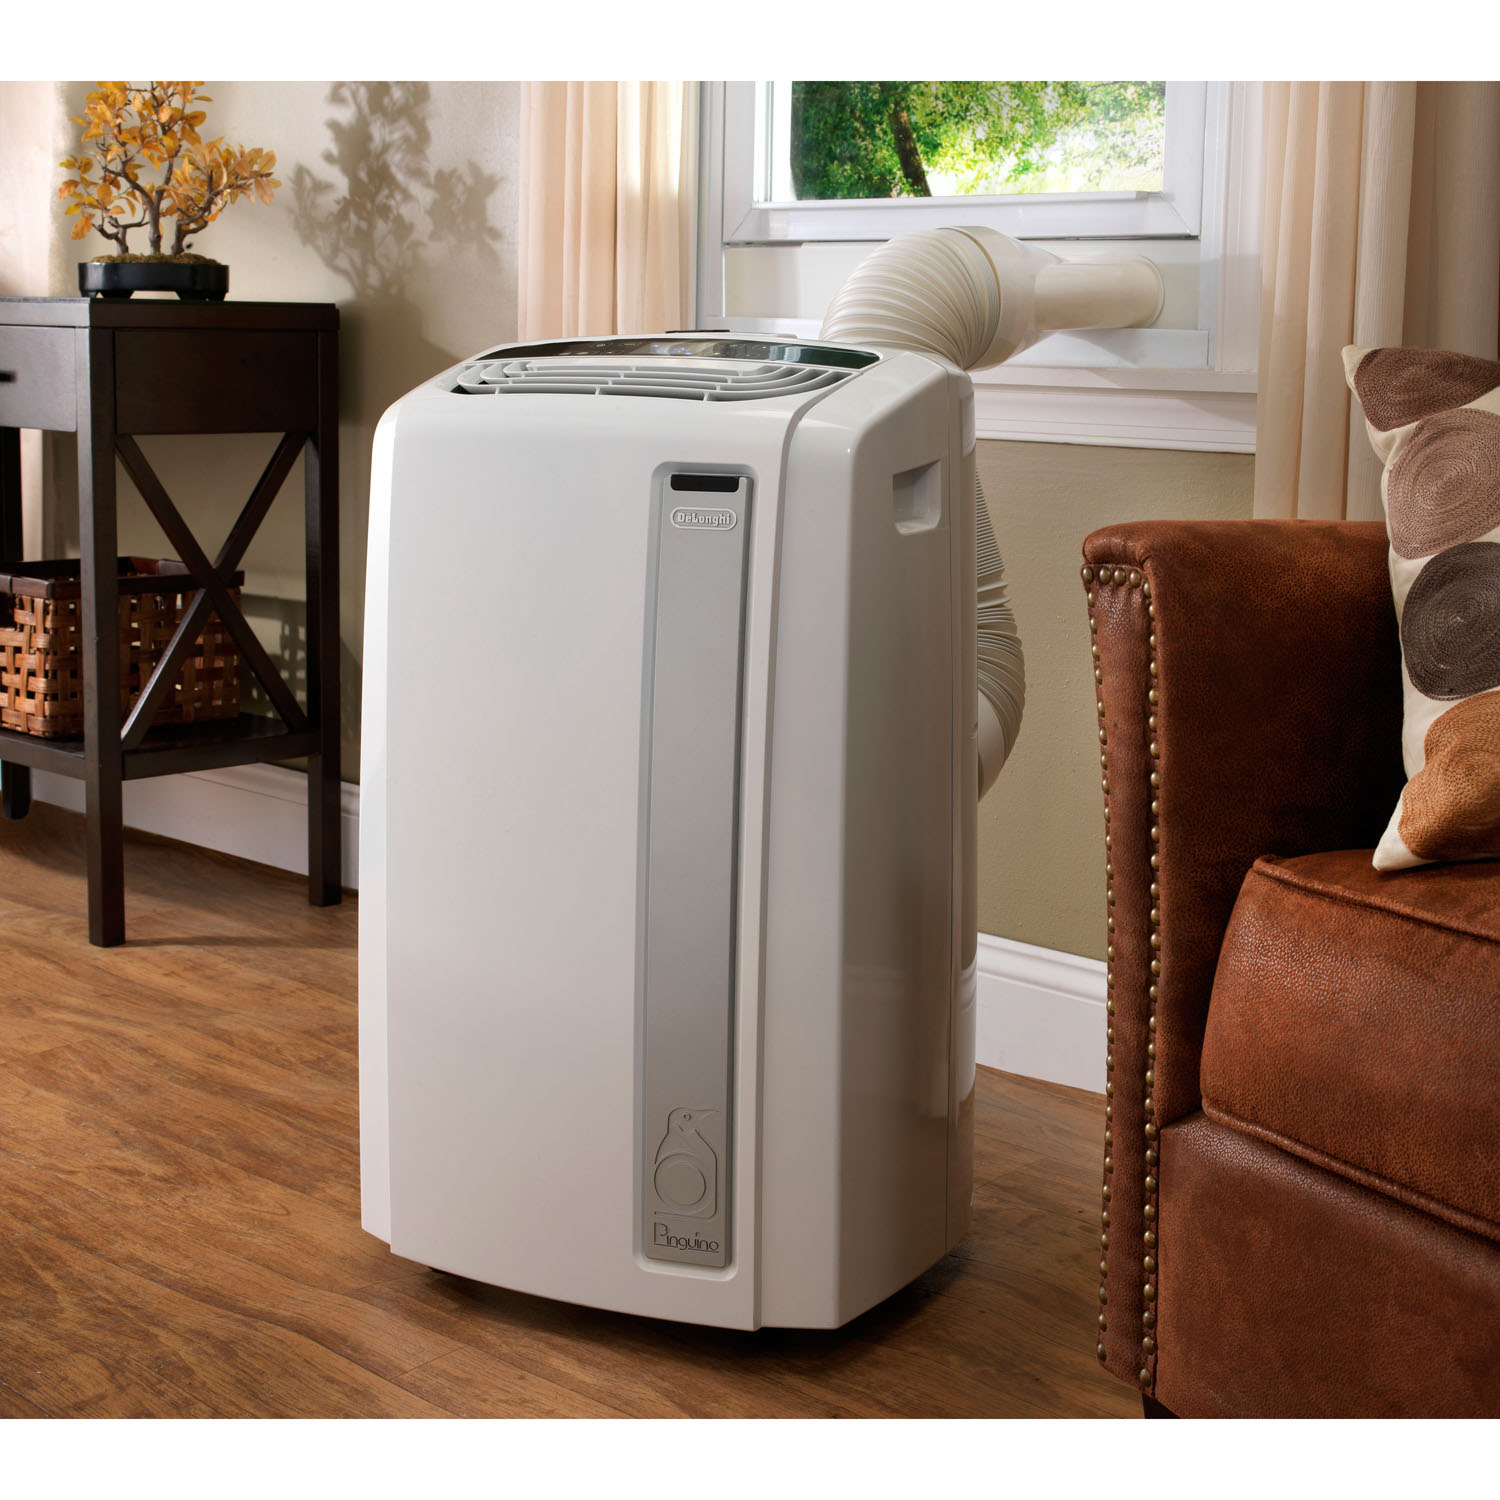 Delonghi pinguino whisper quiet 12 000 btu portable air for 11000 btu window air conditioner